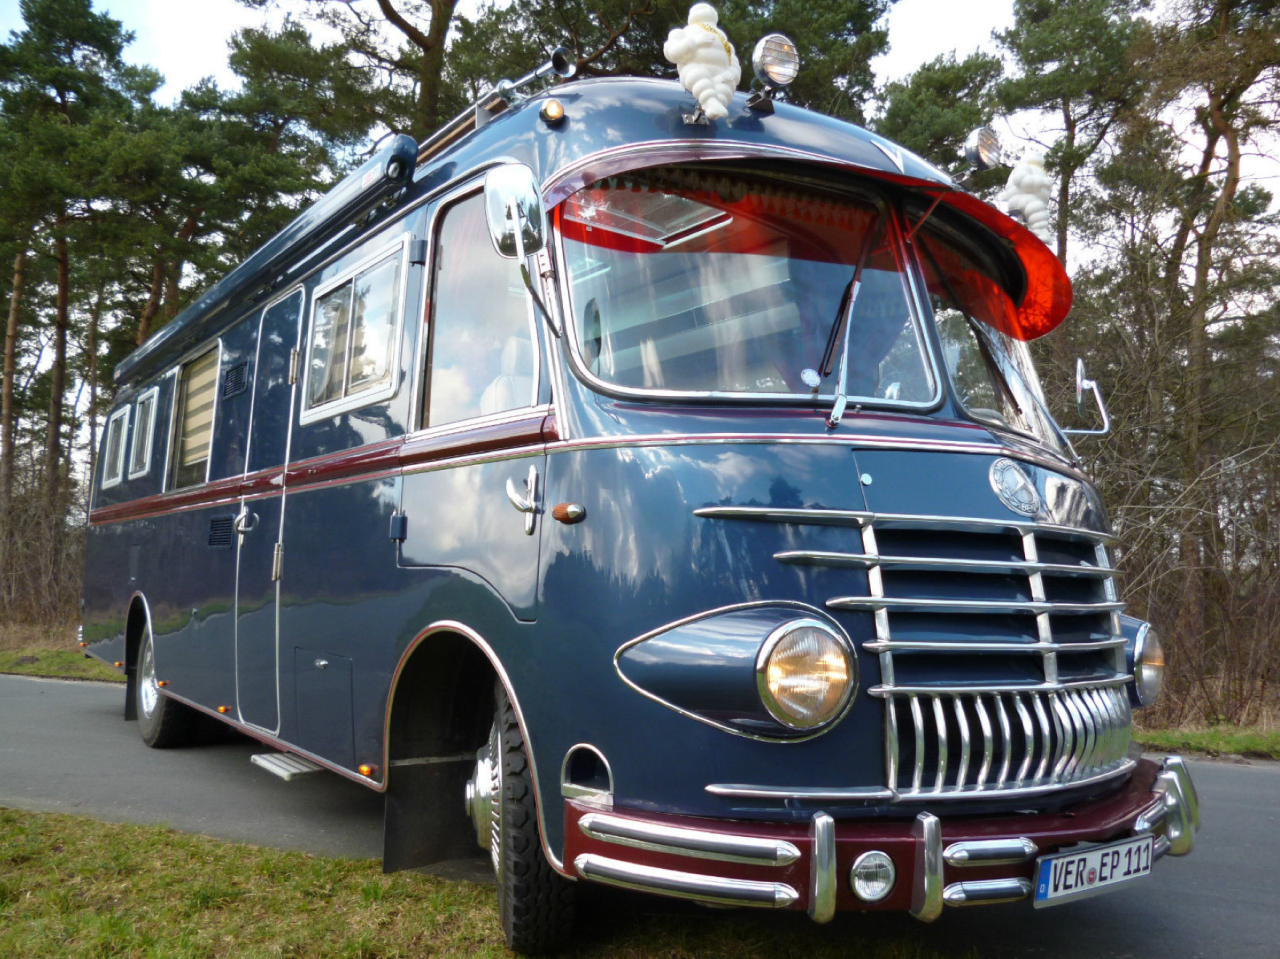 Steampunk Vehicles Vintage Trailers Mercedes Bus Classic Cars Trucks